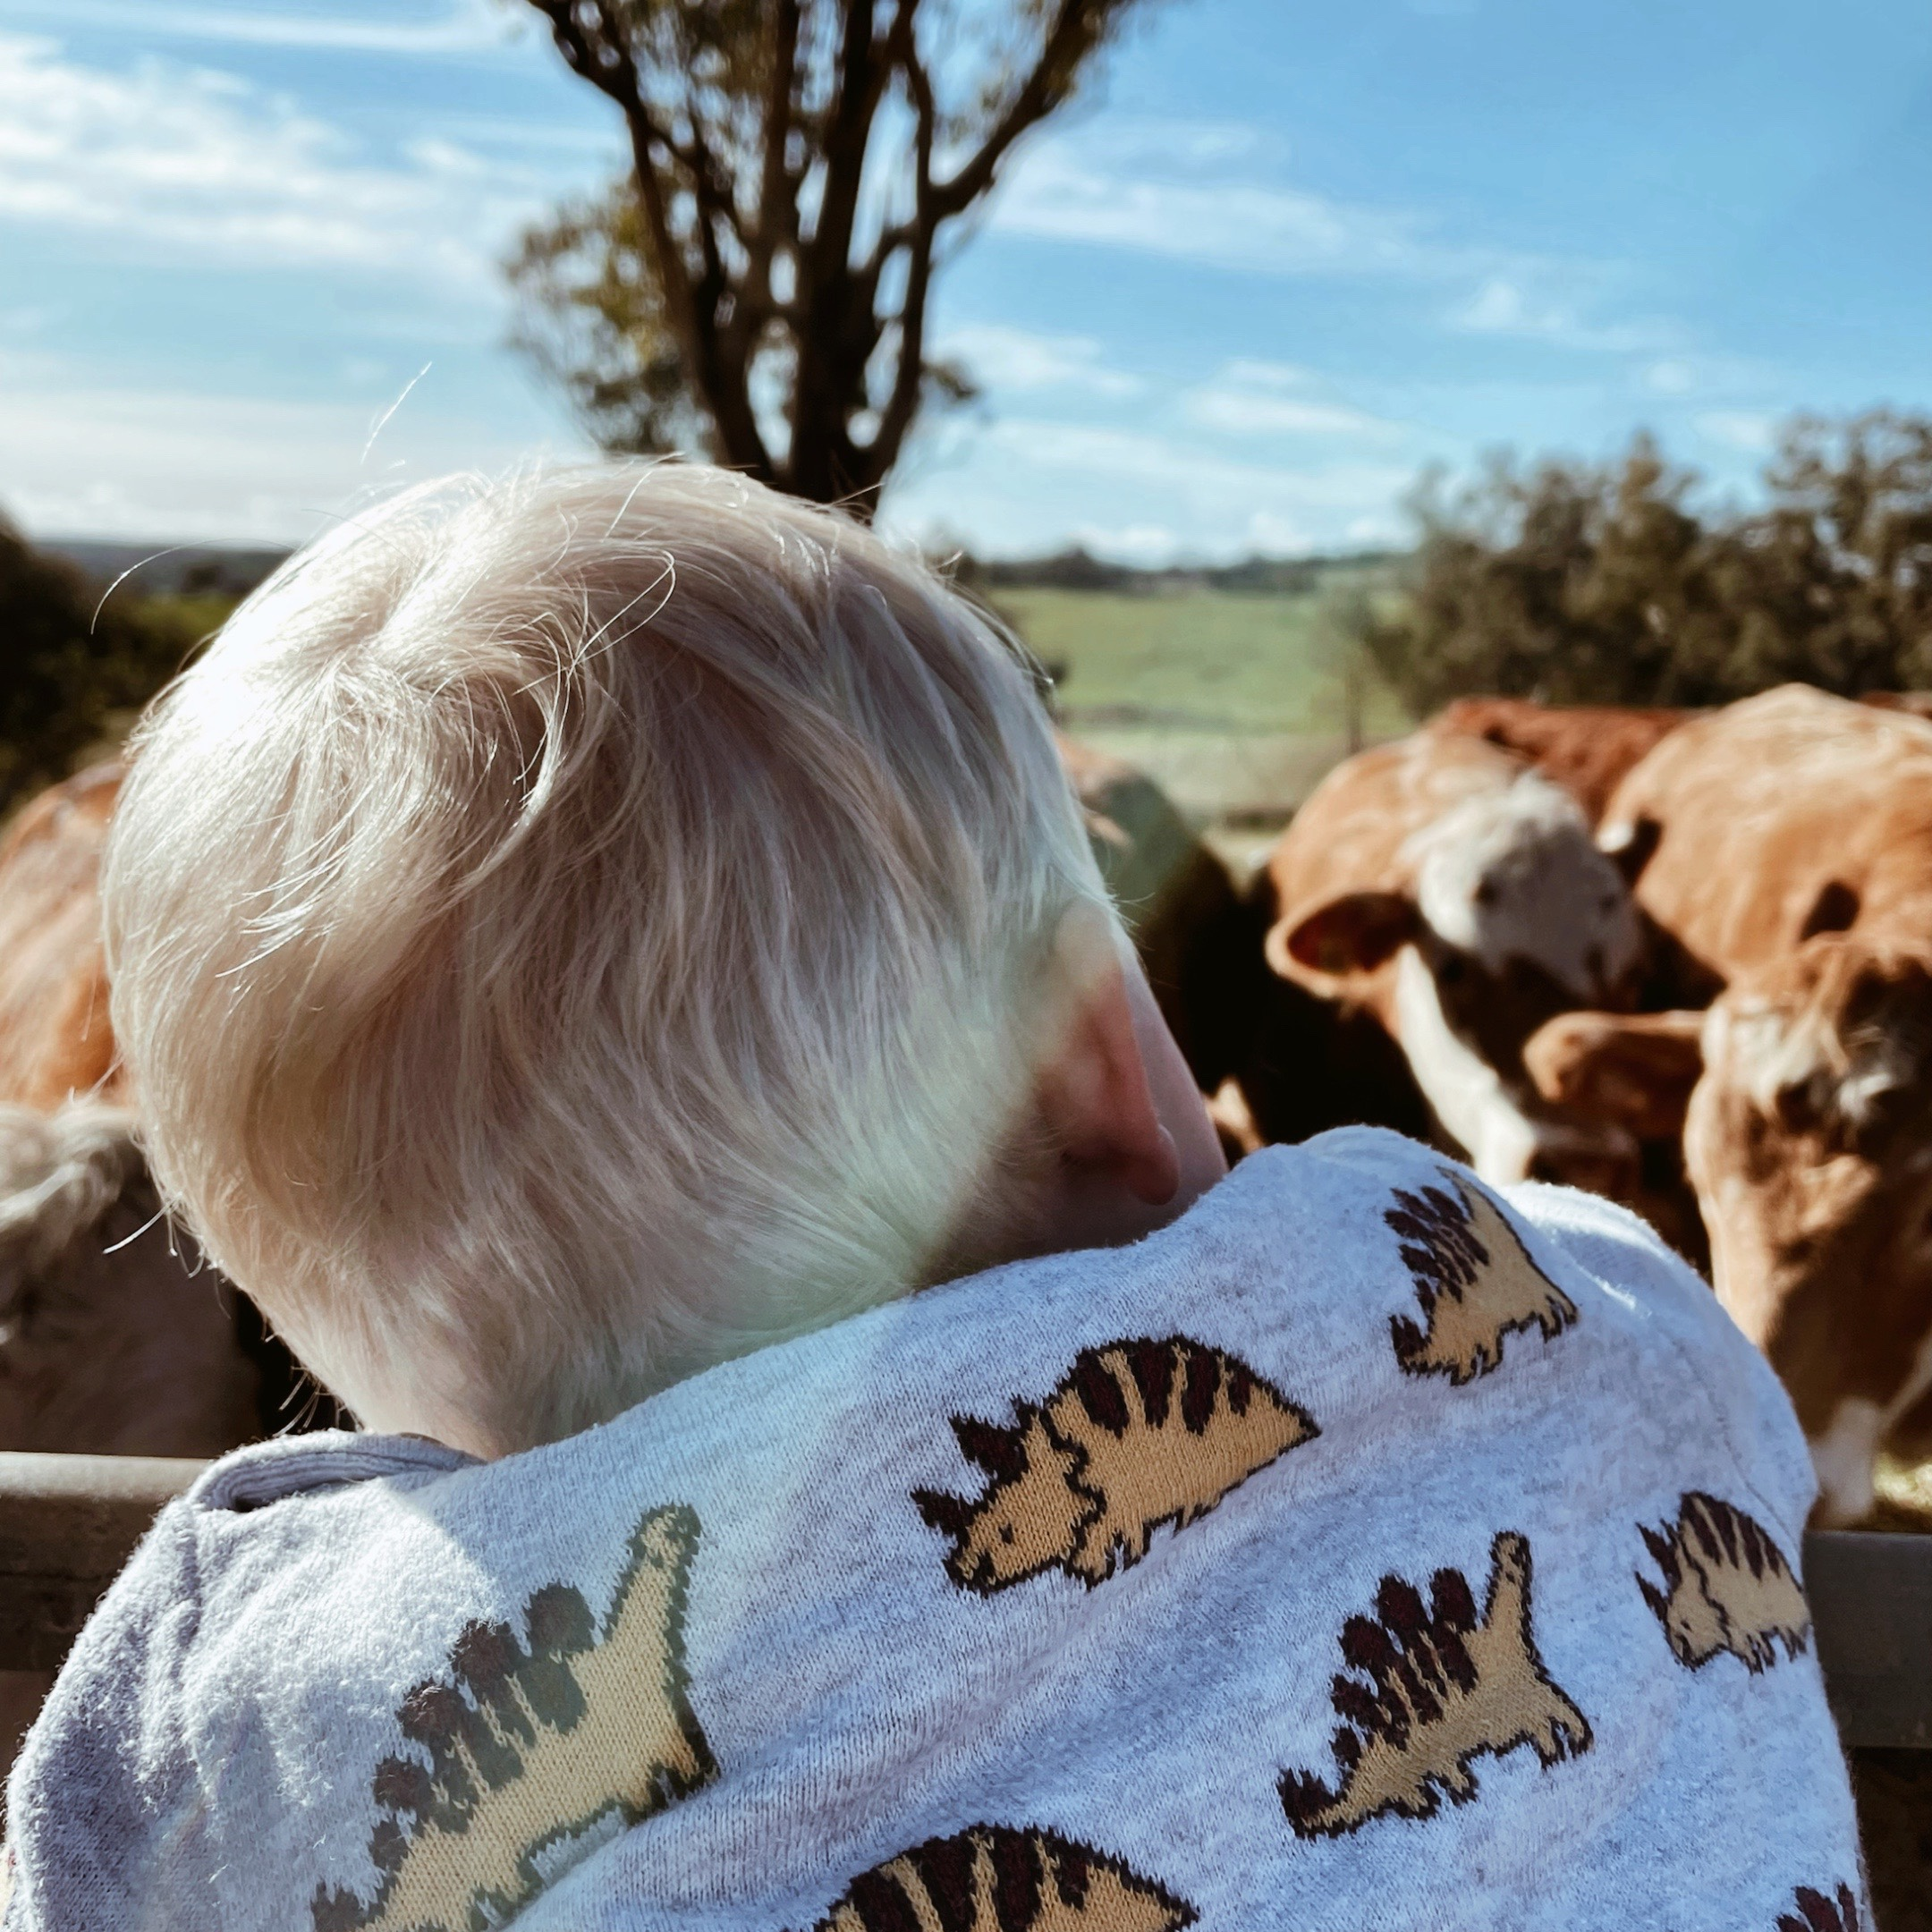 Back of a toddler boy's head looking into a paddock of cows.